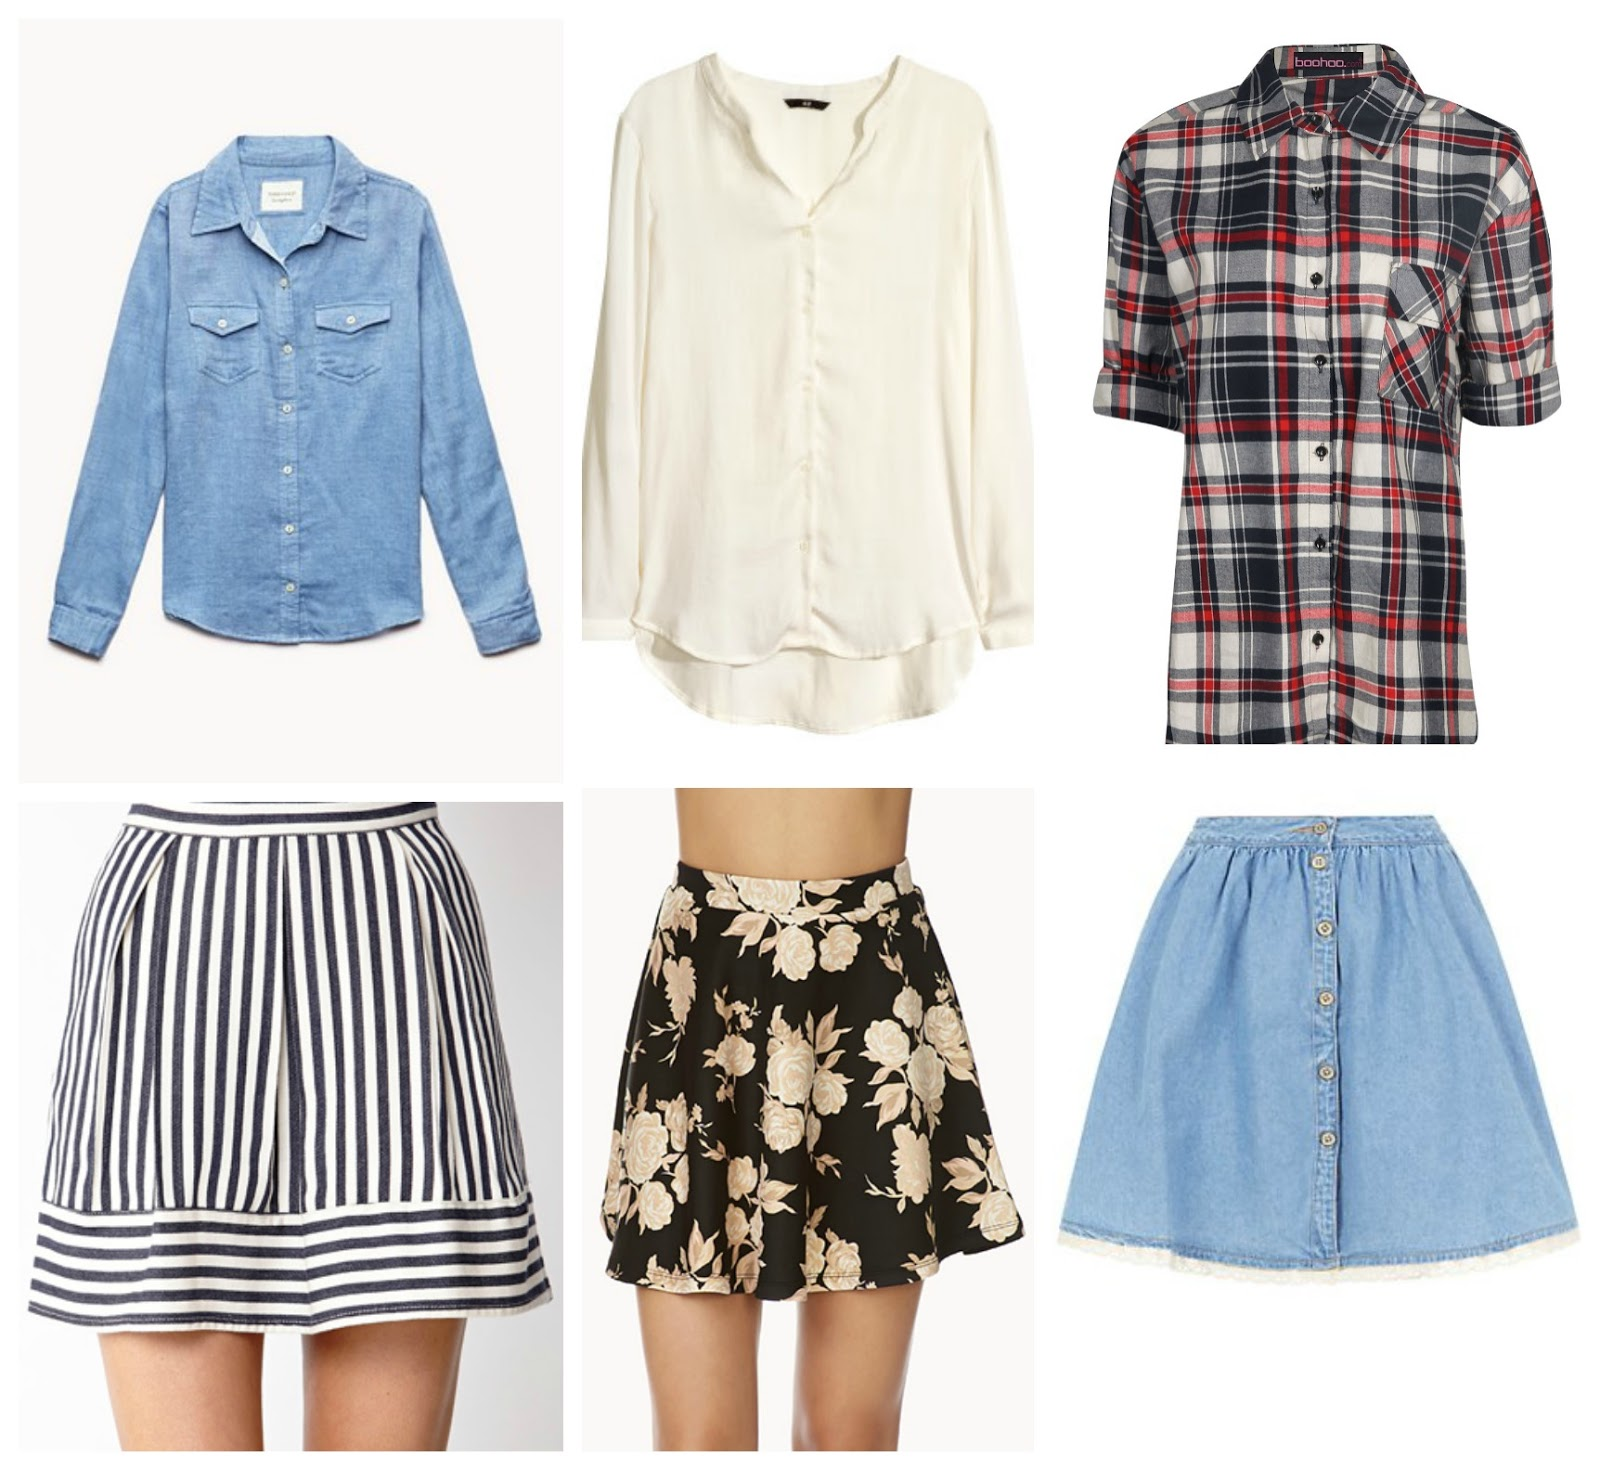 skirts and shirts